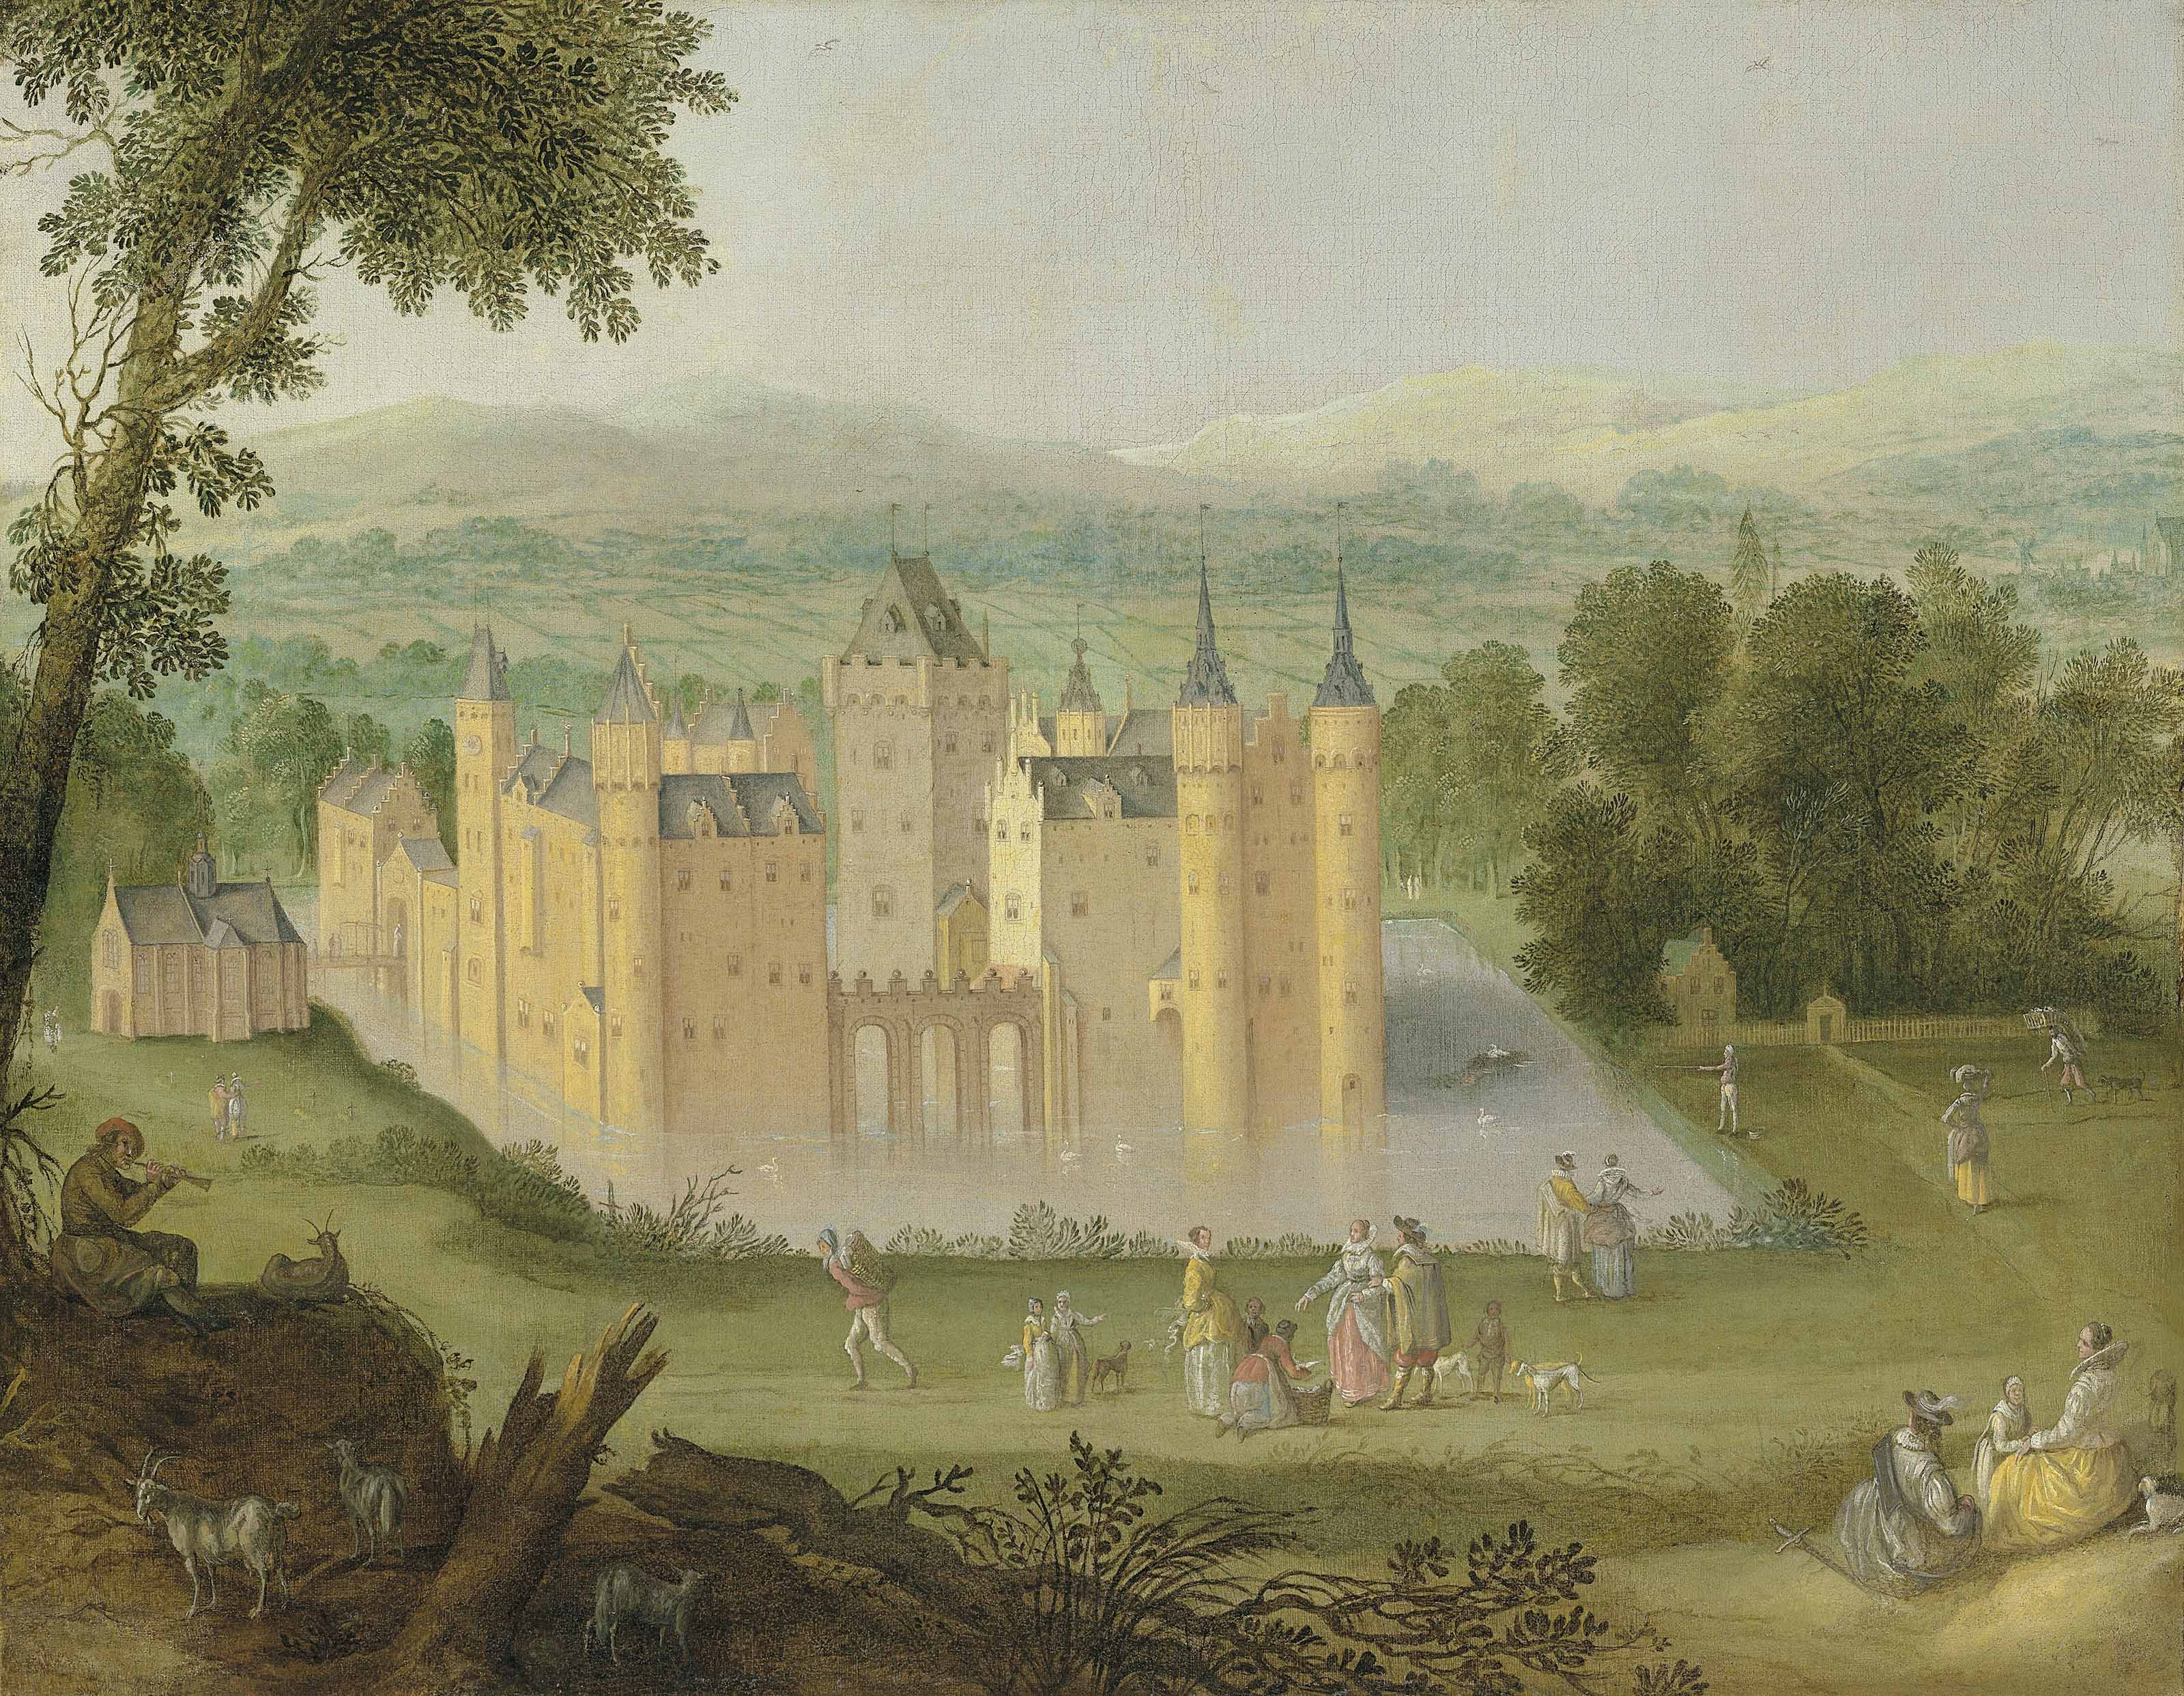 The Castle of Egmond aan den Hoef, with elegant company in the foreground